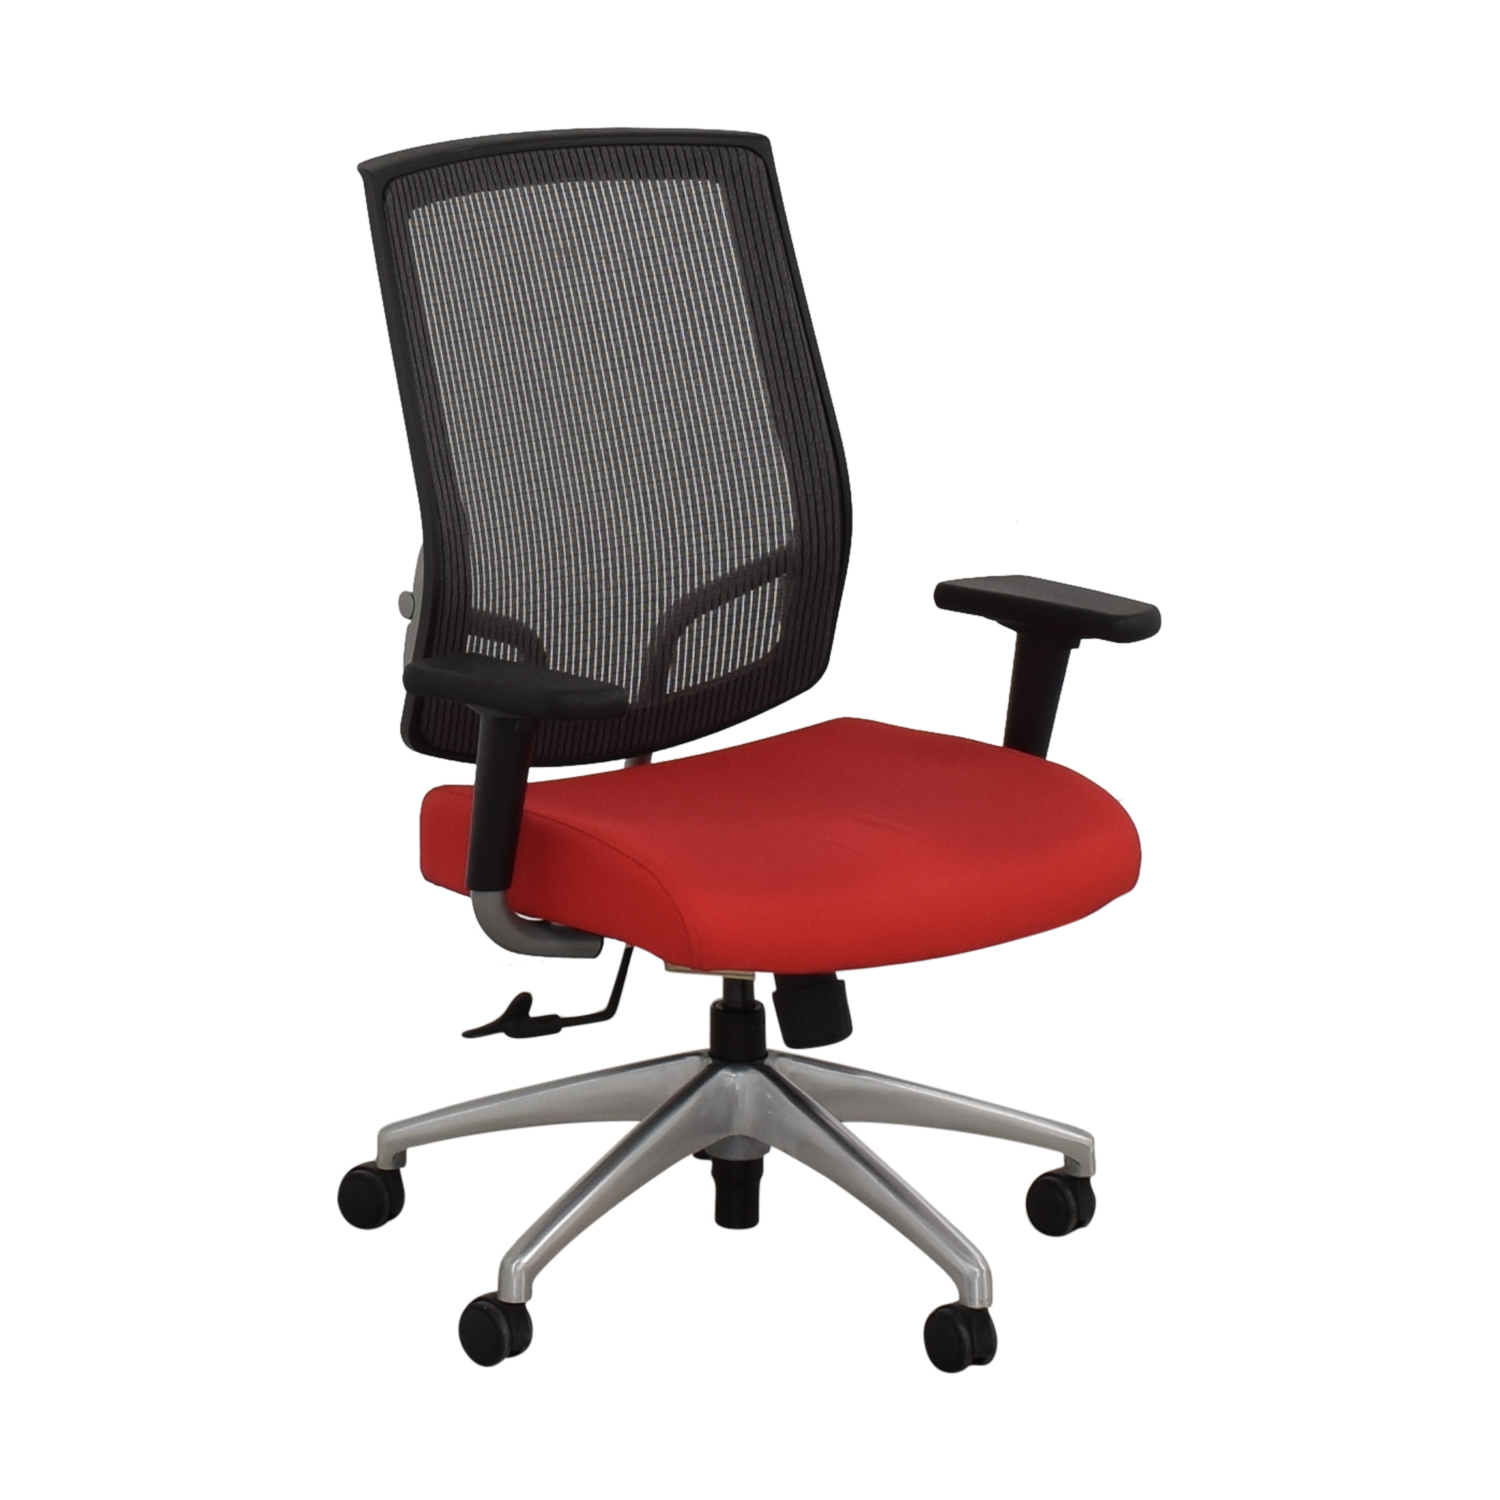 SitOnIt SitOnIt Focus High Back Office Chair ma